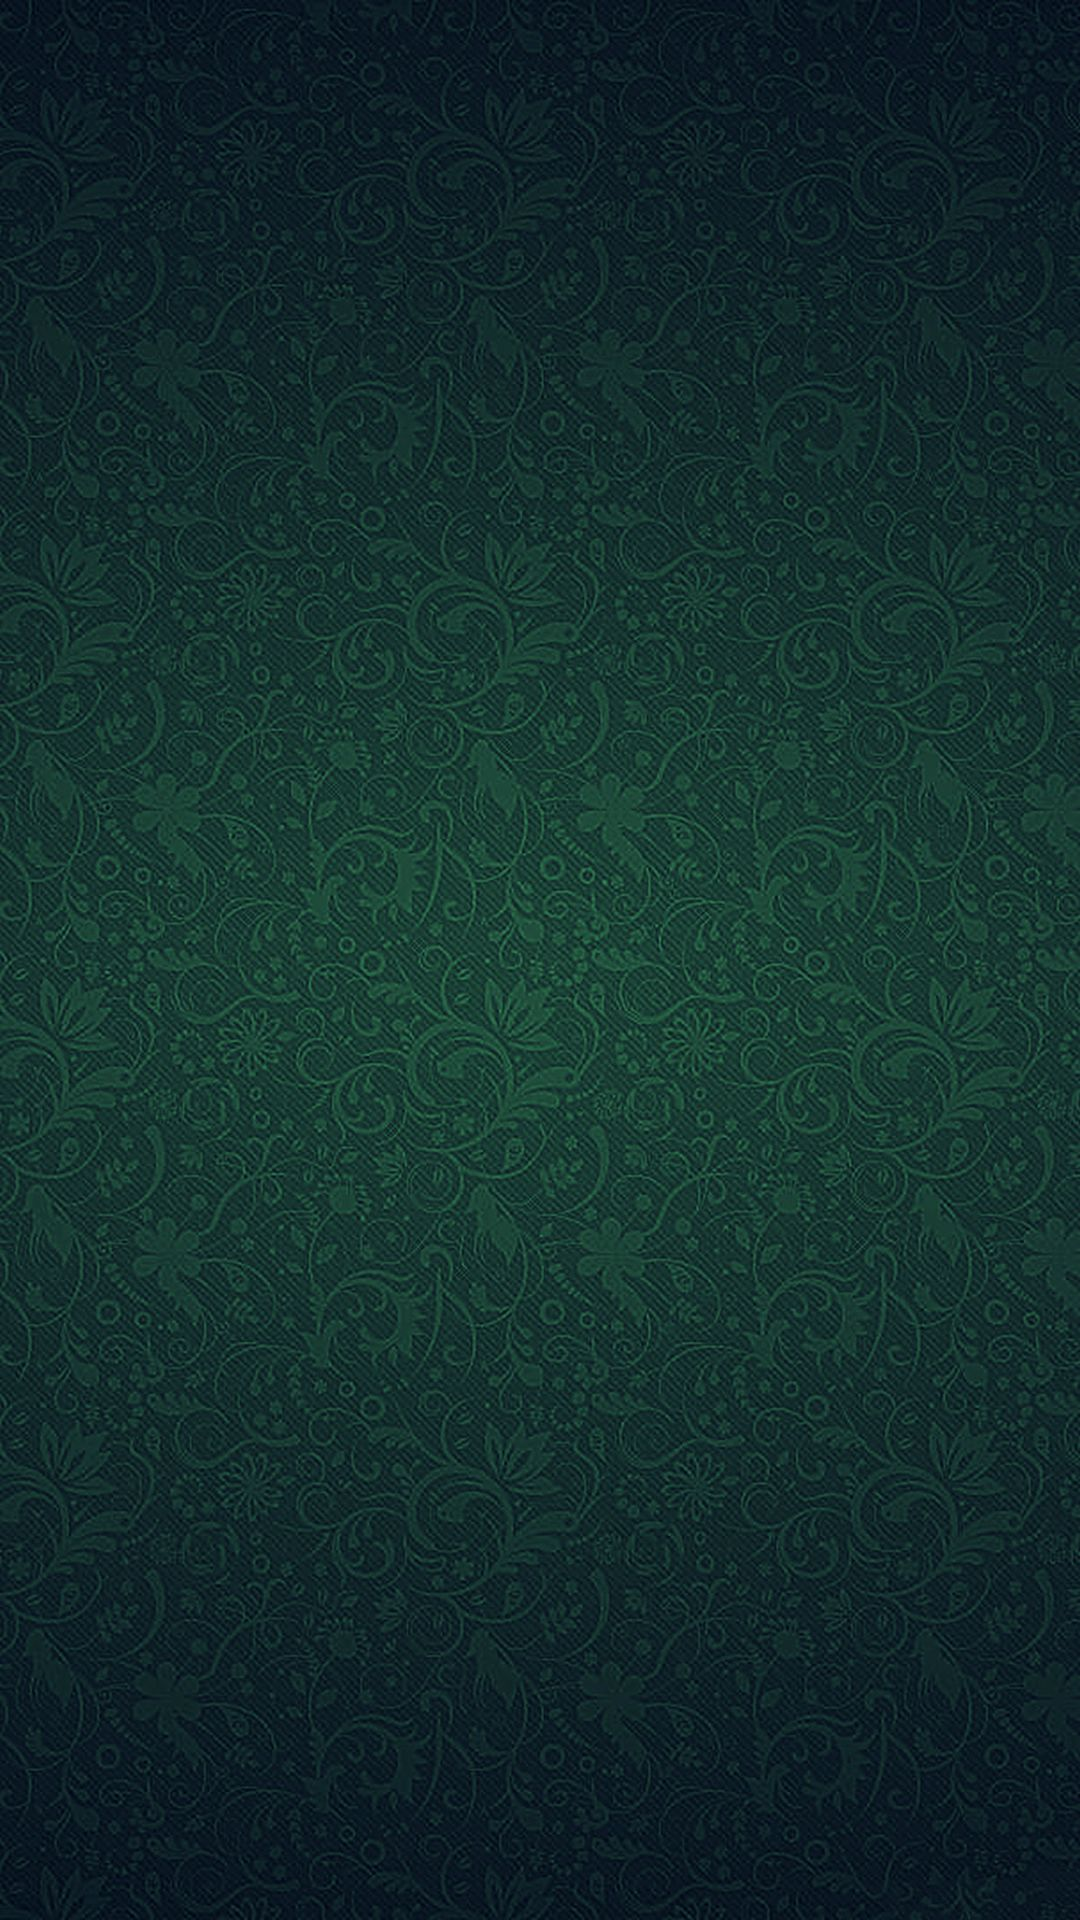 Green Ornament Texture Pattern Iphone 7 Wallpaper Leaves Wallpaper Iphone Green Wallpaper Textures Patterns